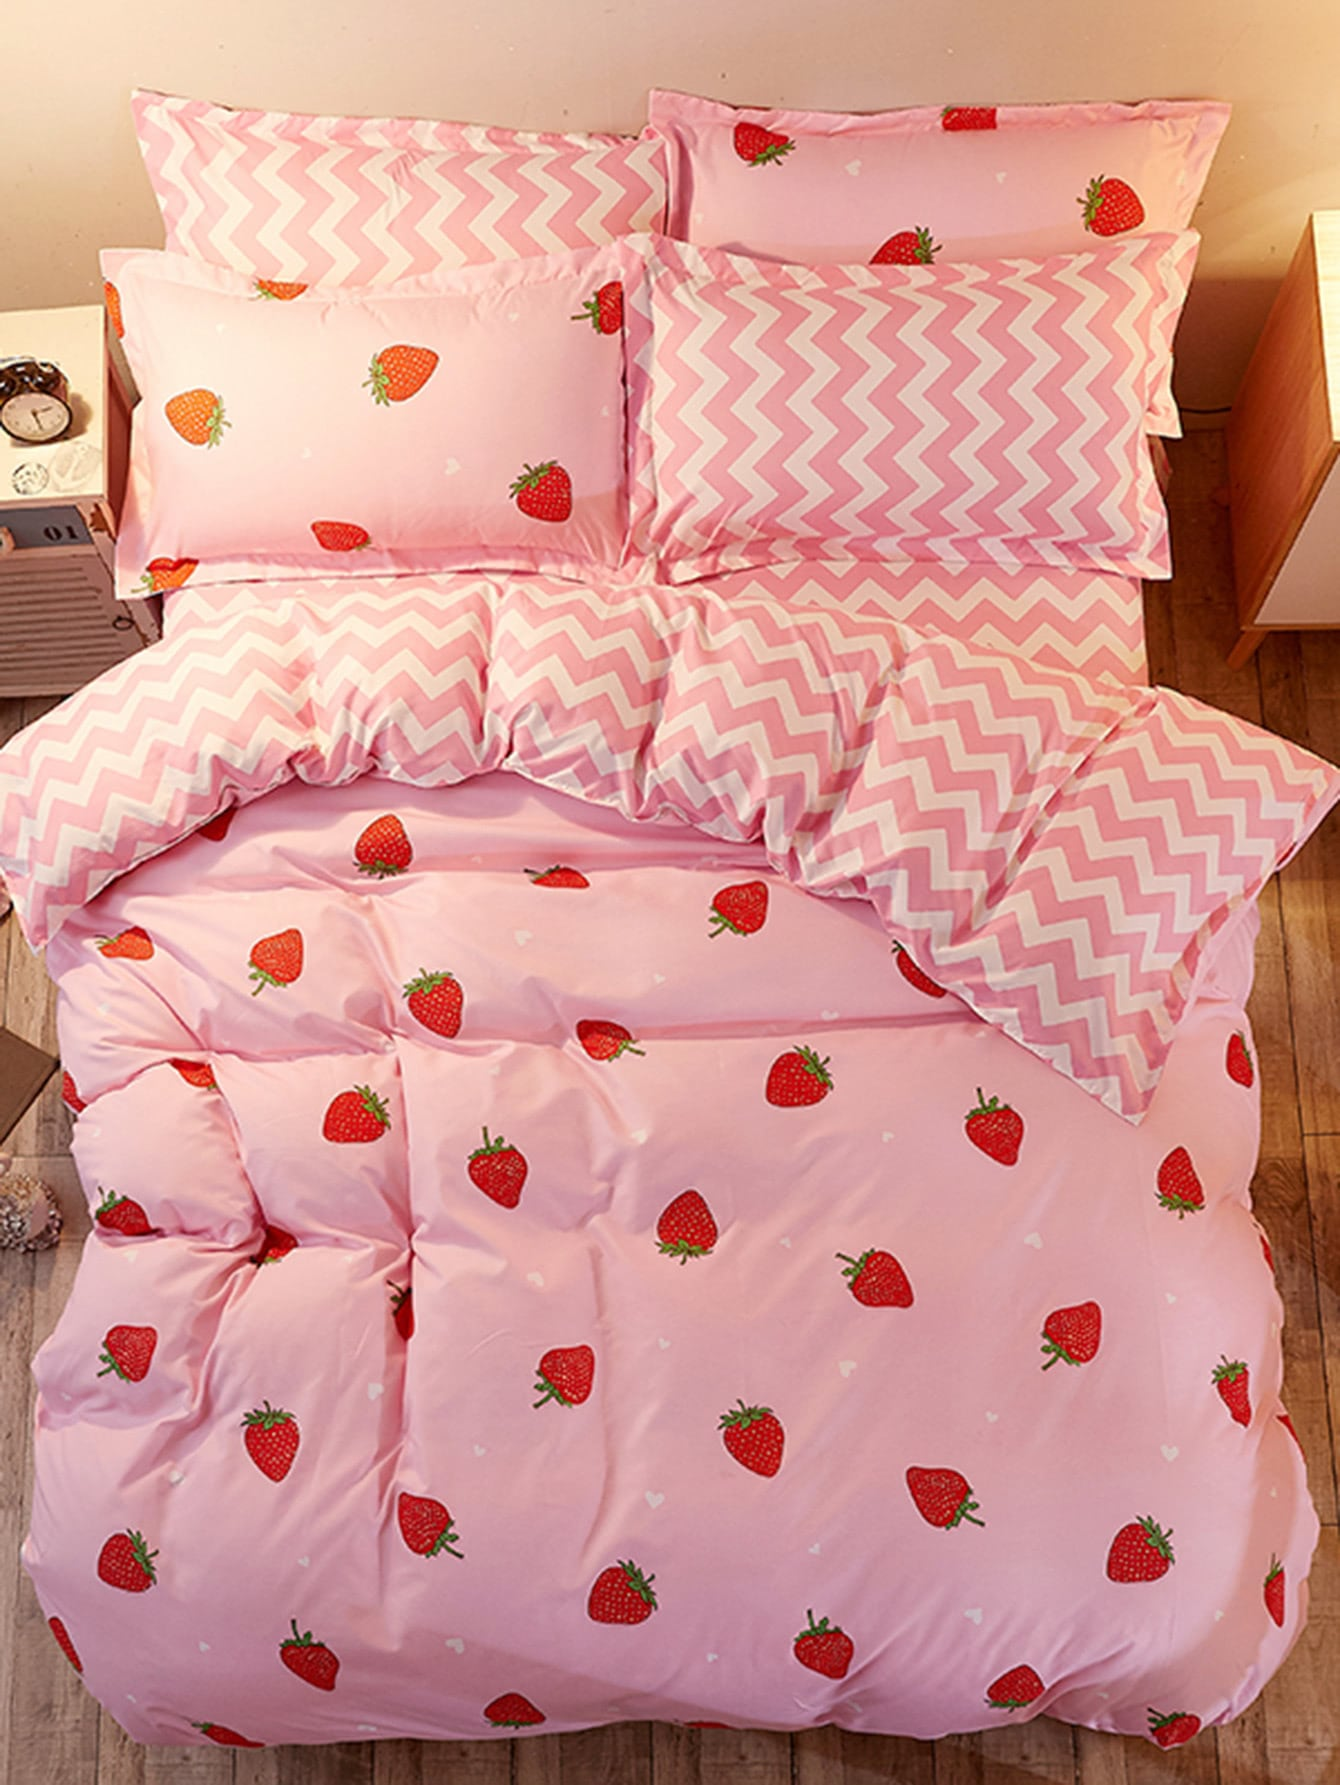 1.5m 4Pcs Fruit Print Chevron Duvet Cover Set 1 2m 4pcs fruit print duvet cover set